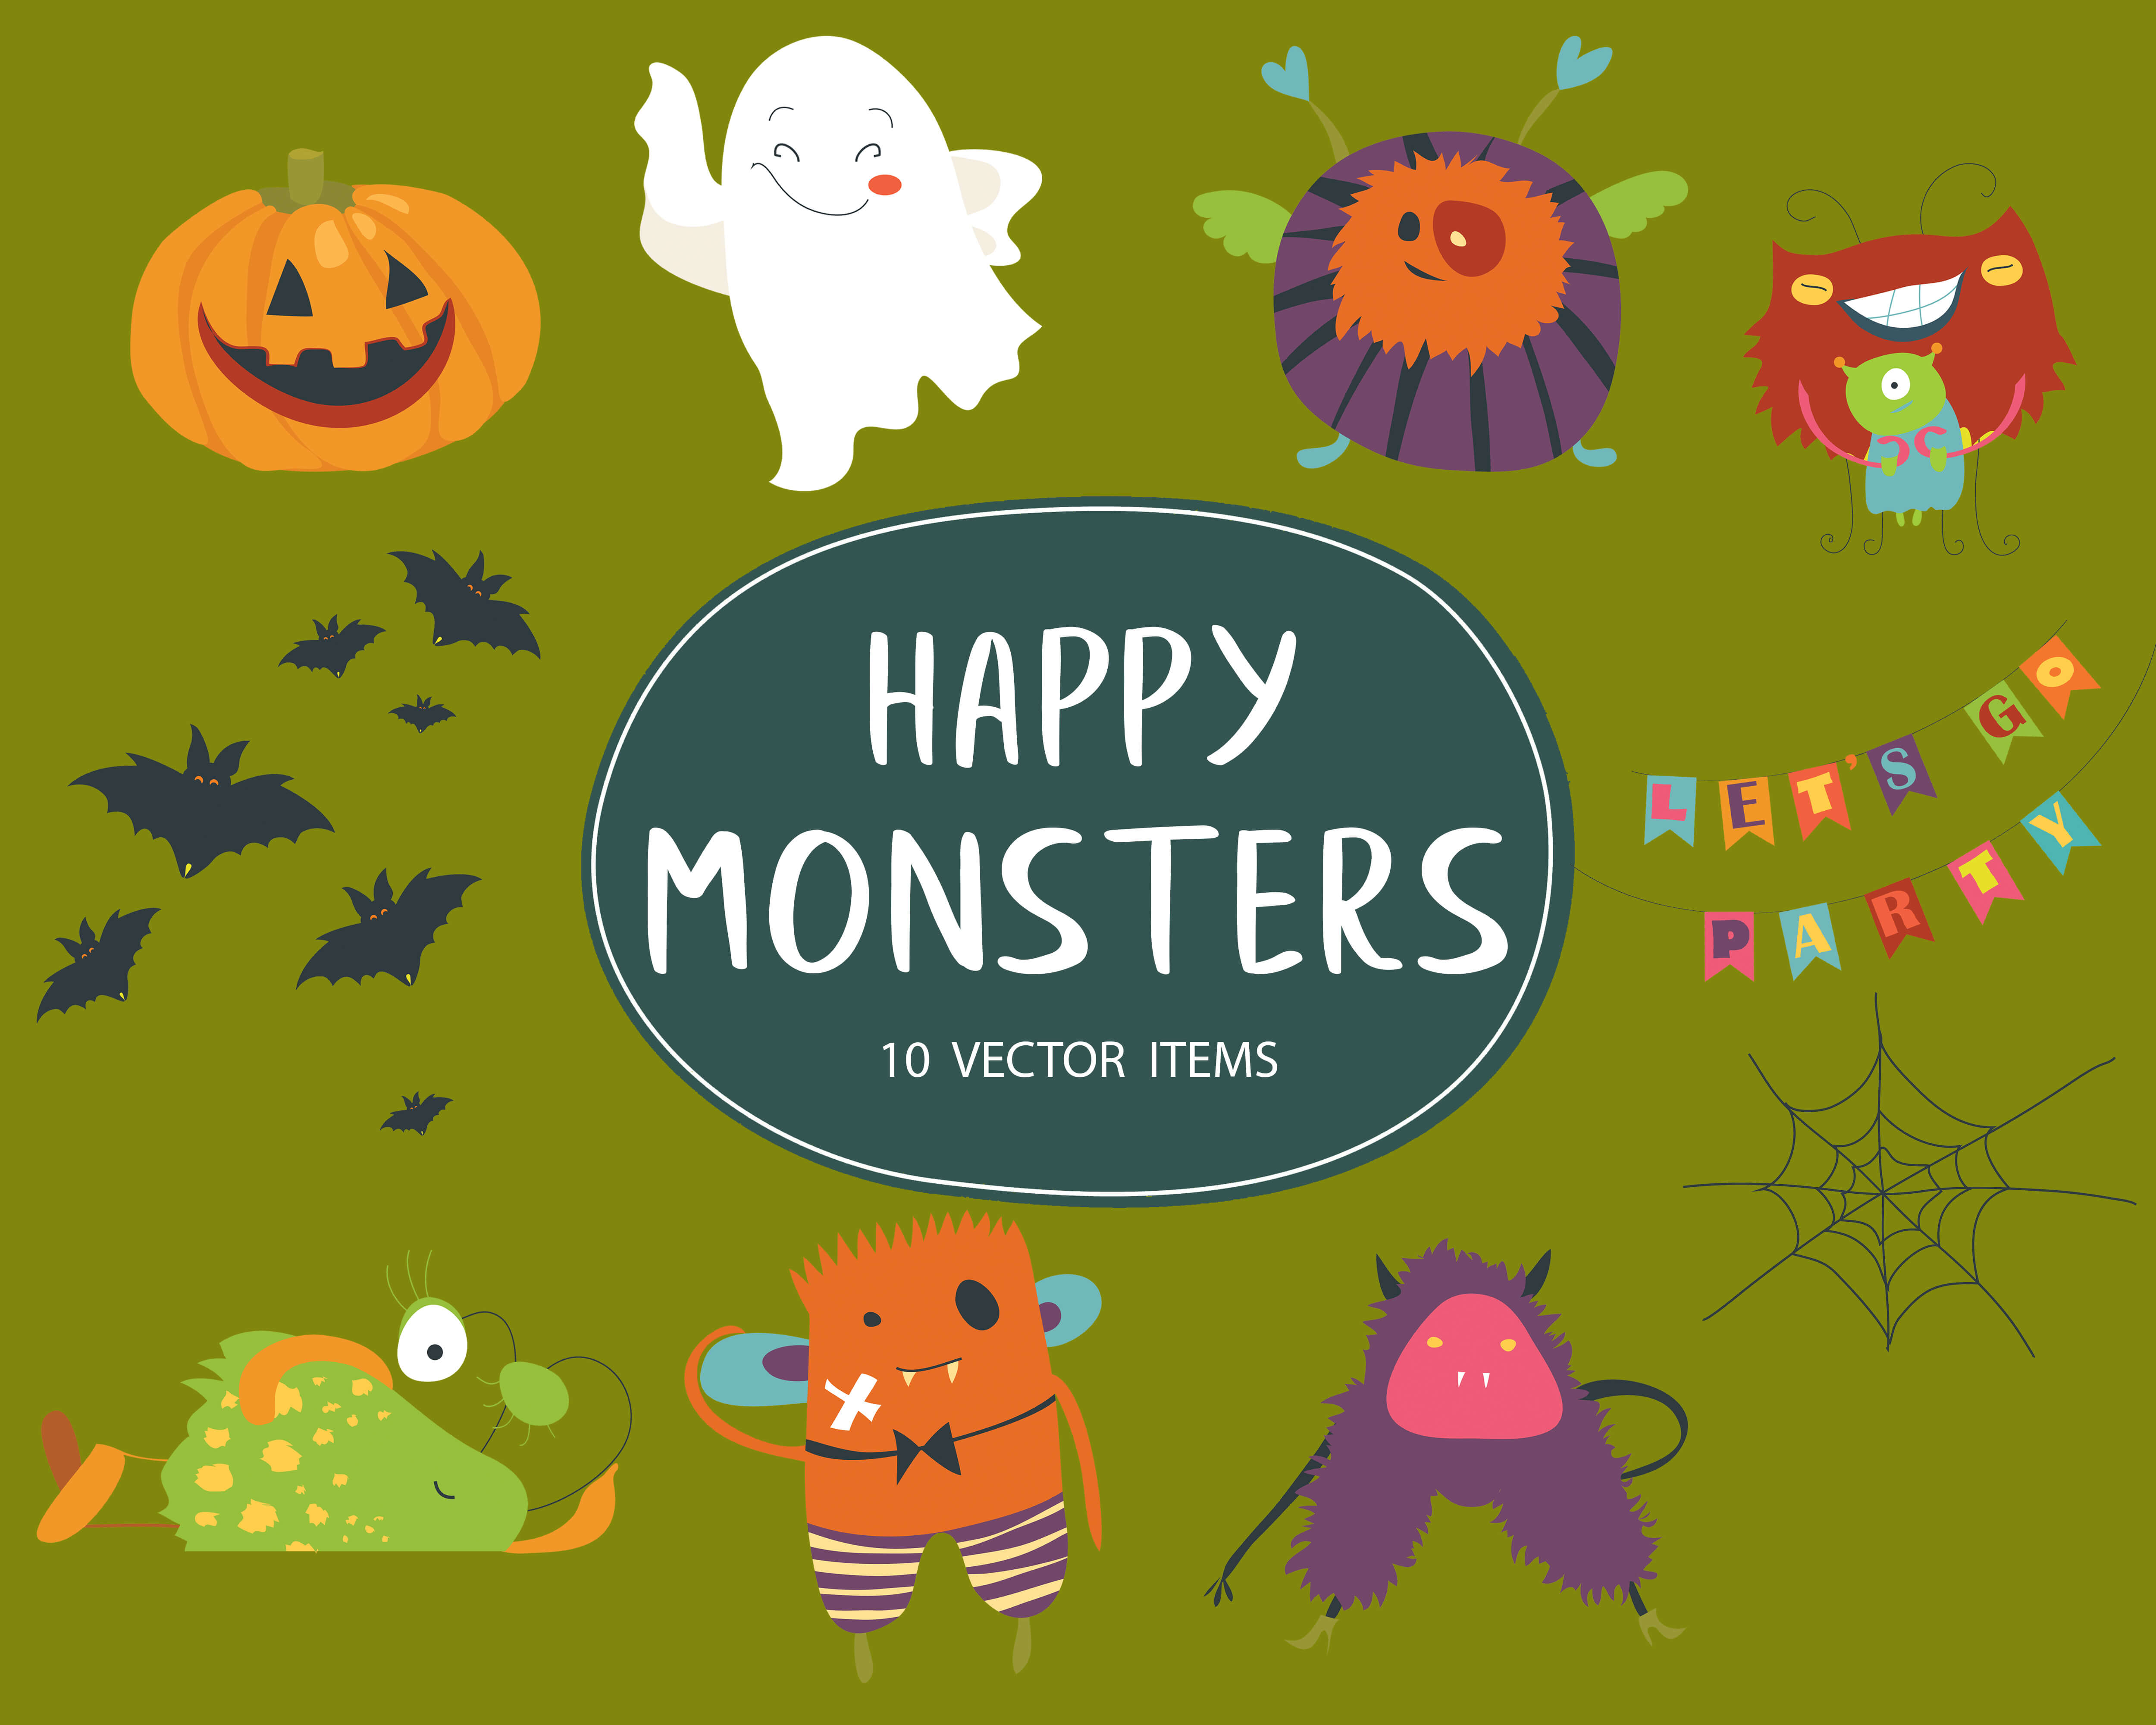 Spooky Vector Images - 10 Happy Monsters